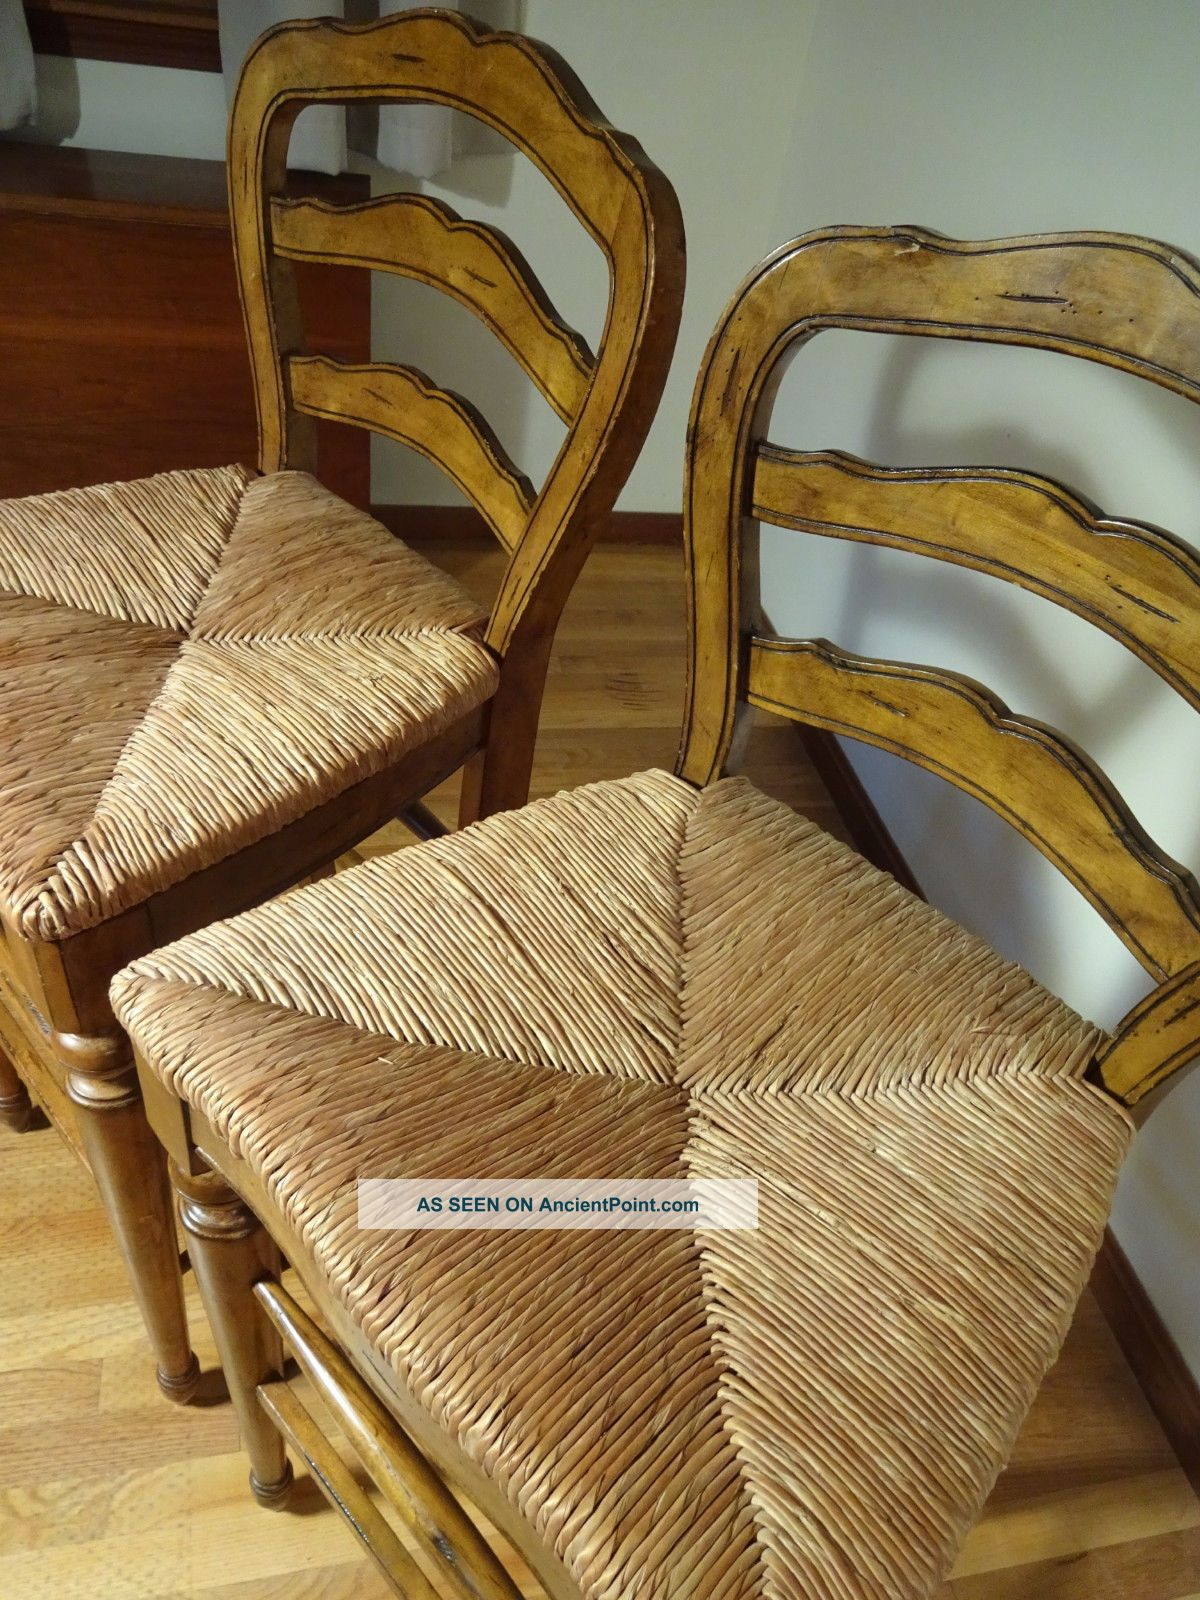 Very Impressive portraiture of French Country Counter Bar Stools Rush Seats Avignon Provincial  with #3D2311 color and 1200x1600 pixels